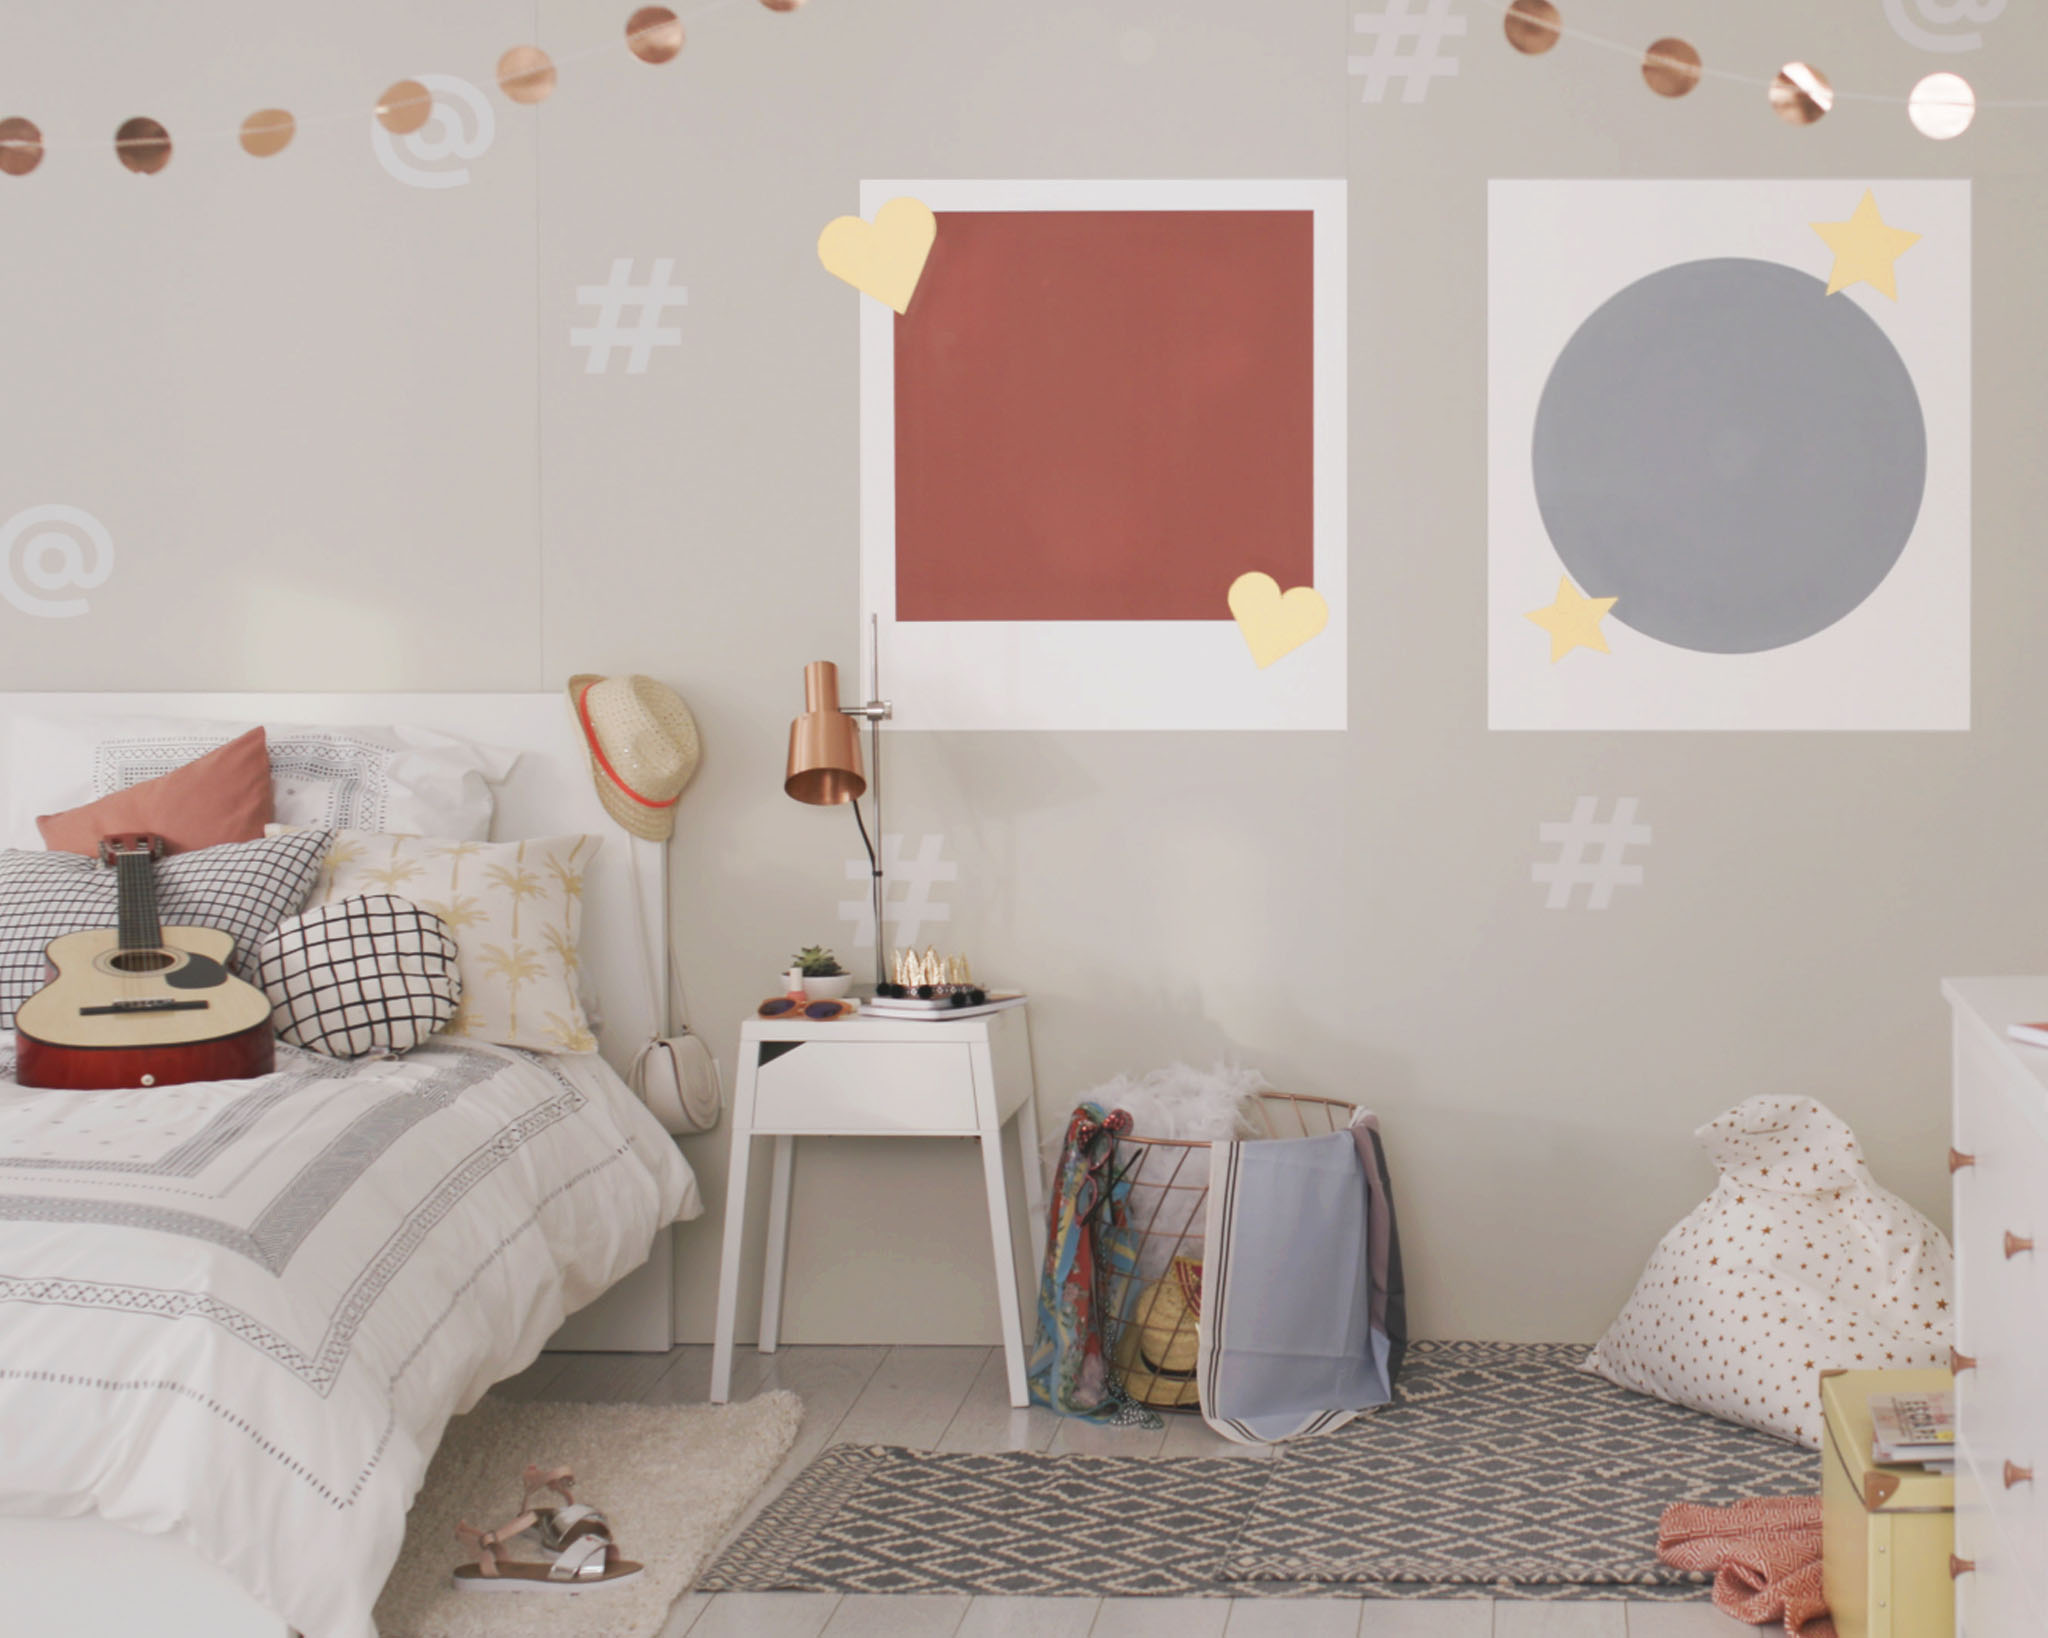 Create a selfie room for your teenager with fun frame motifs